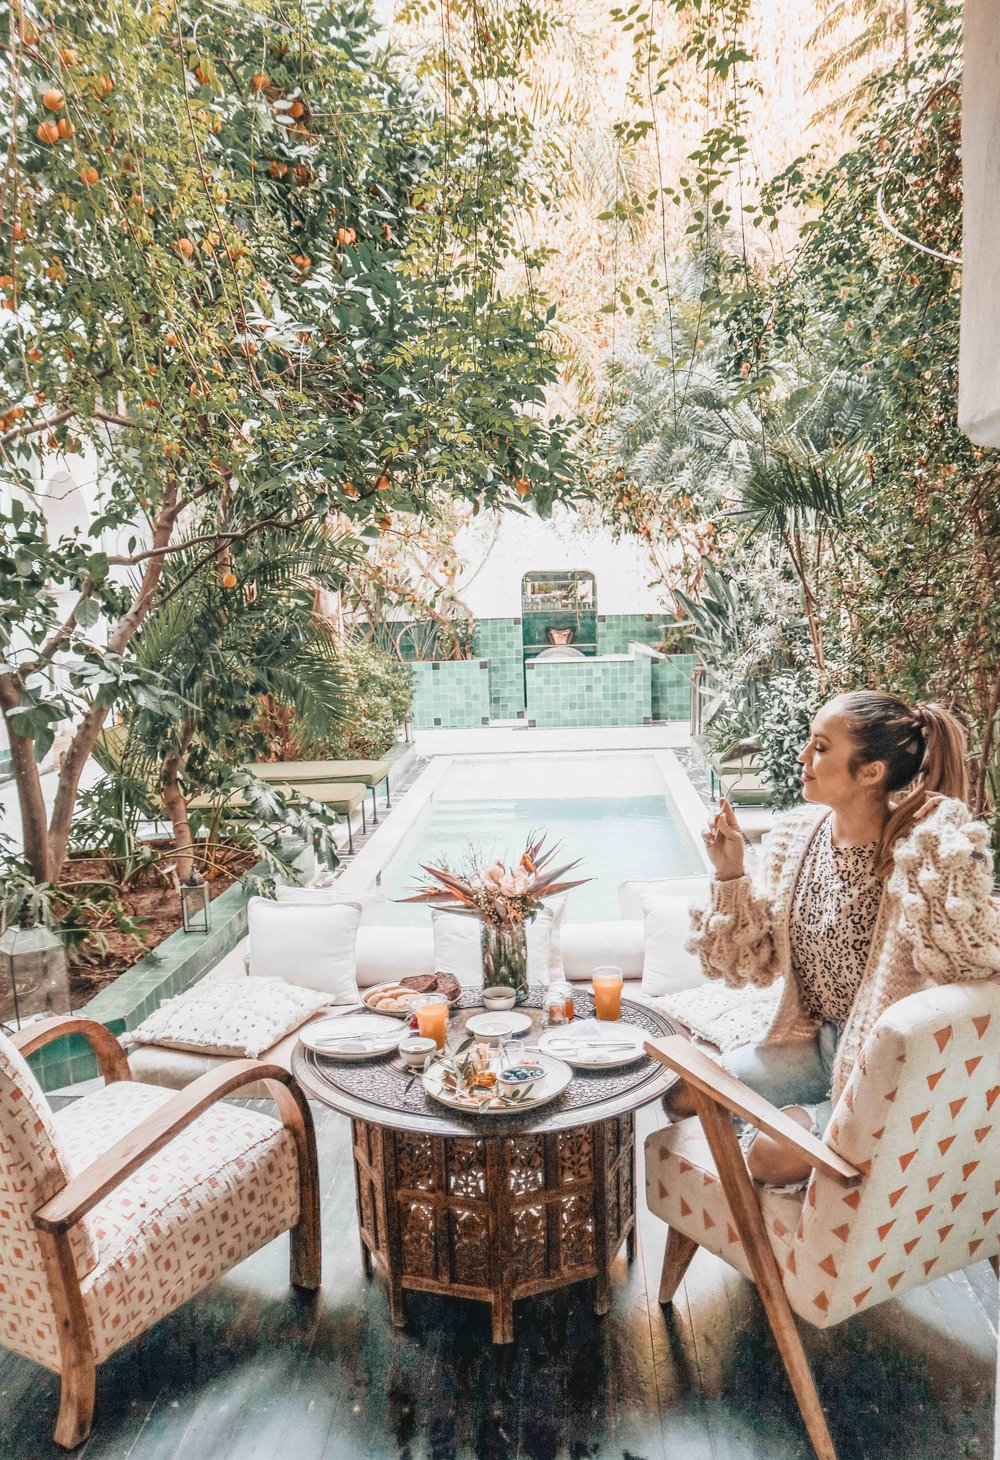 marrakech-where-to-stay-2019.jpg